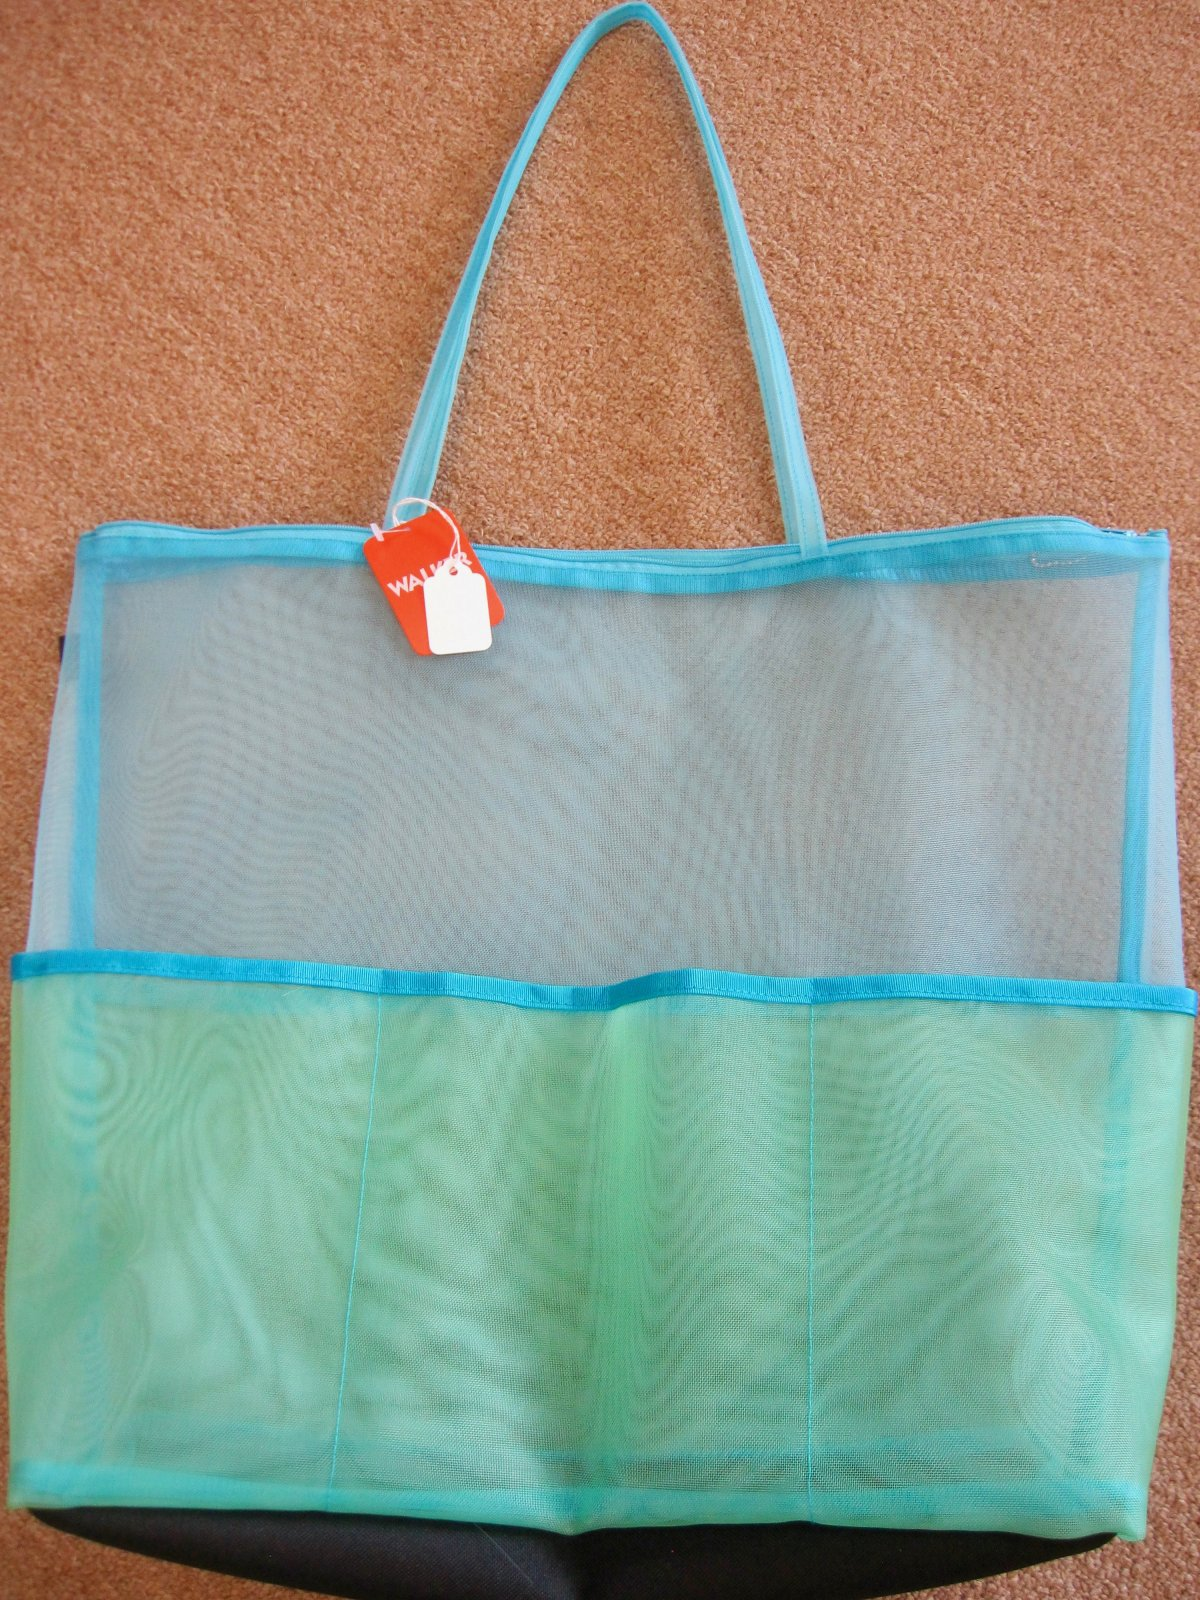 Project - XL Tote